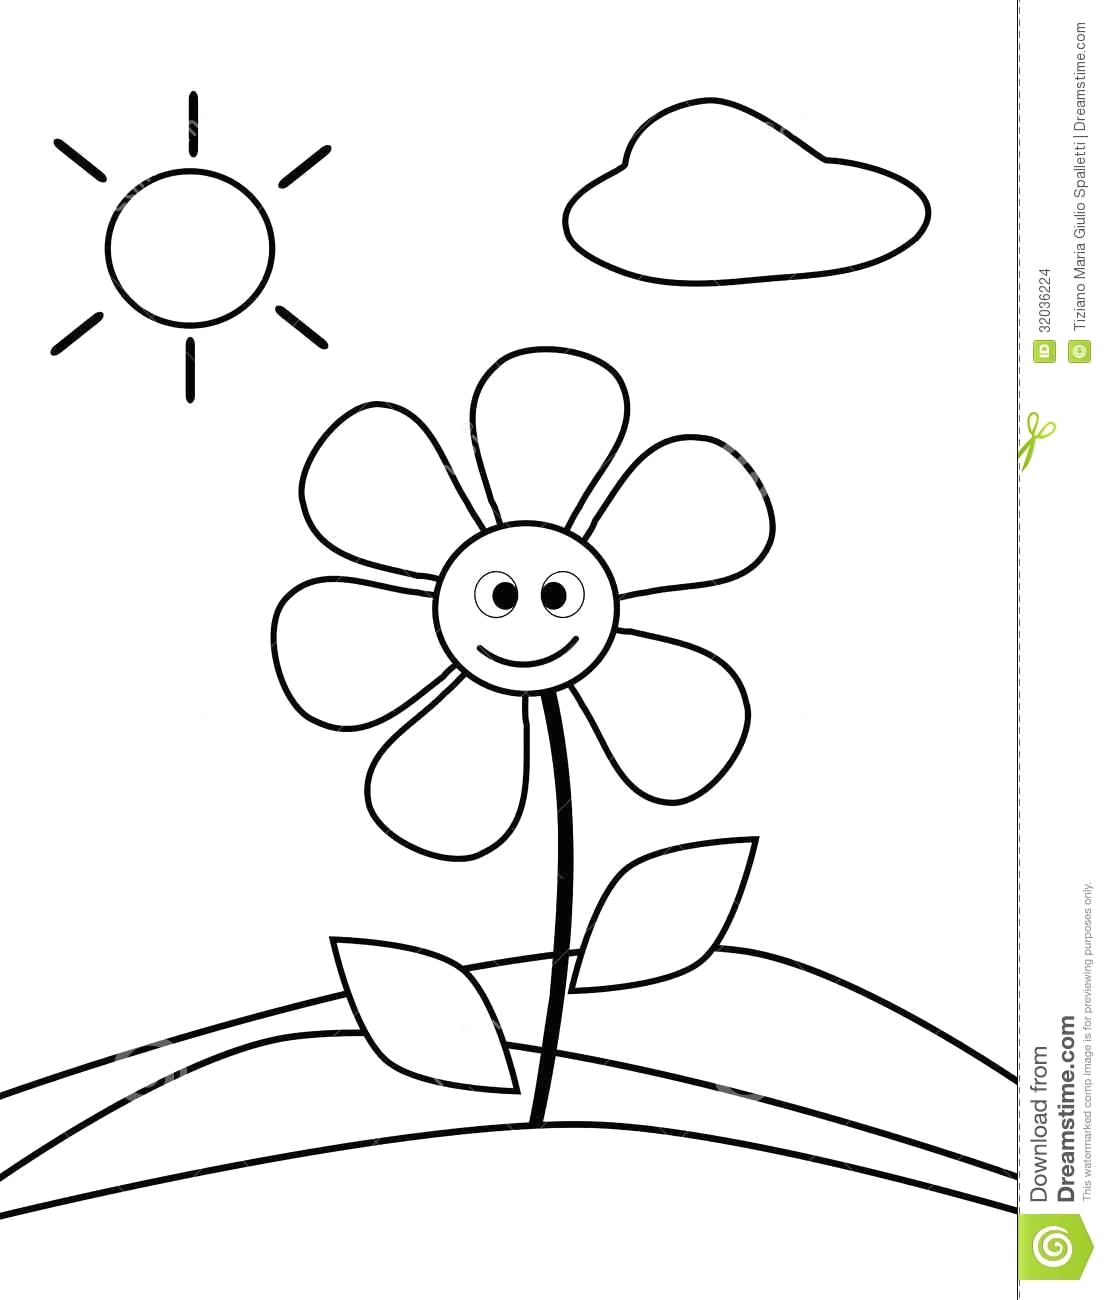 simple coloring pages for 2 year olds